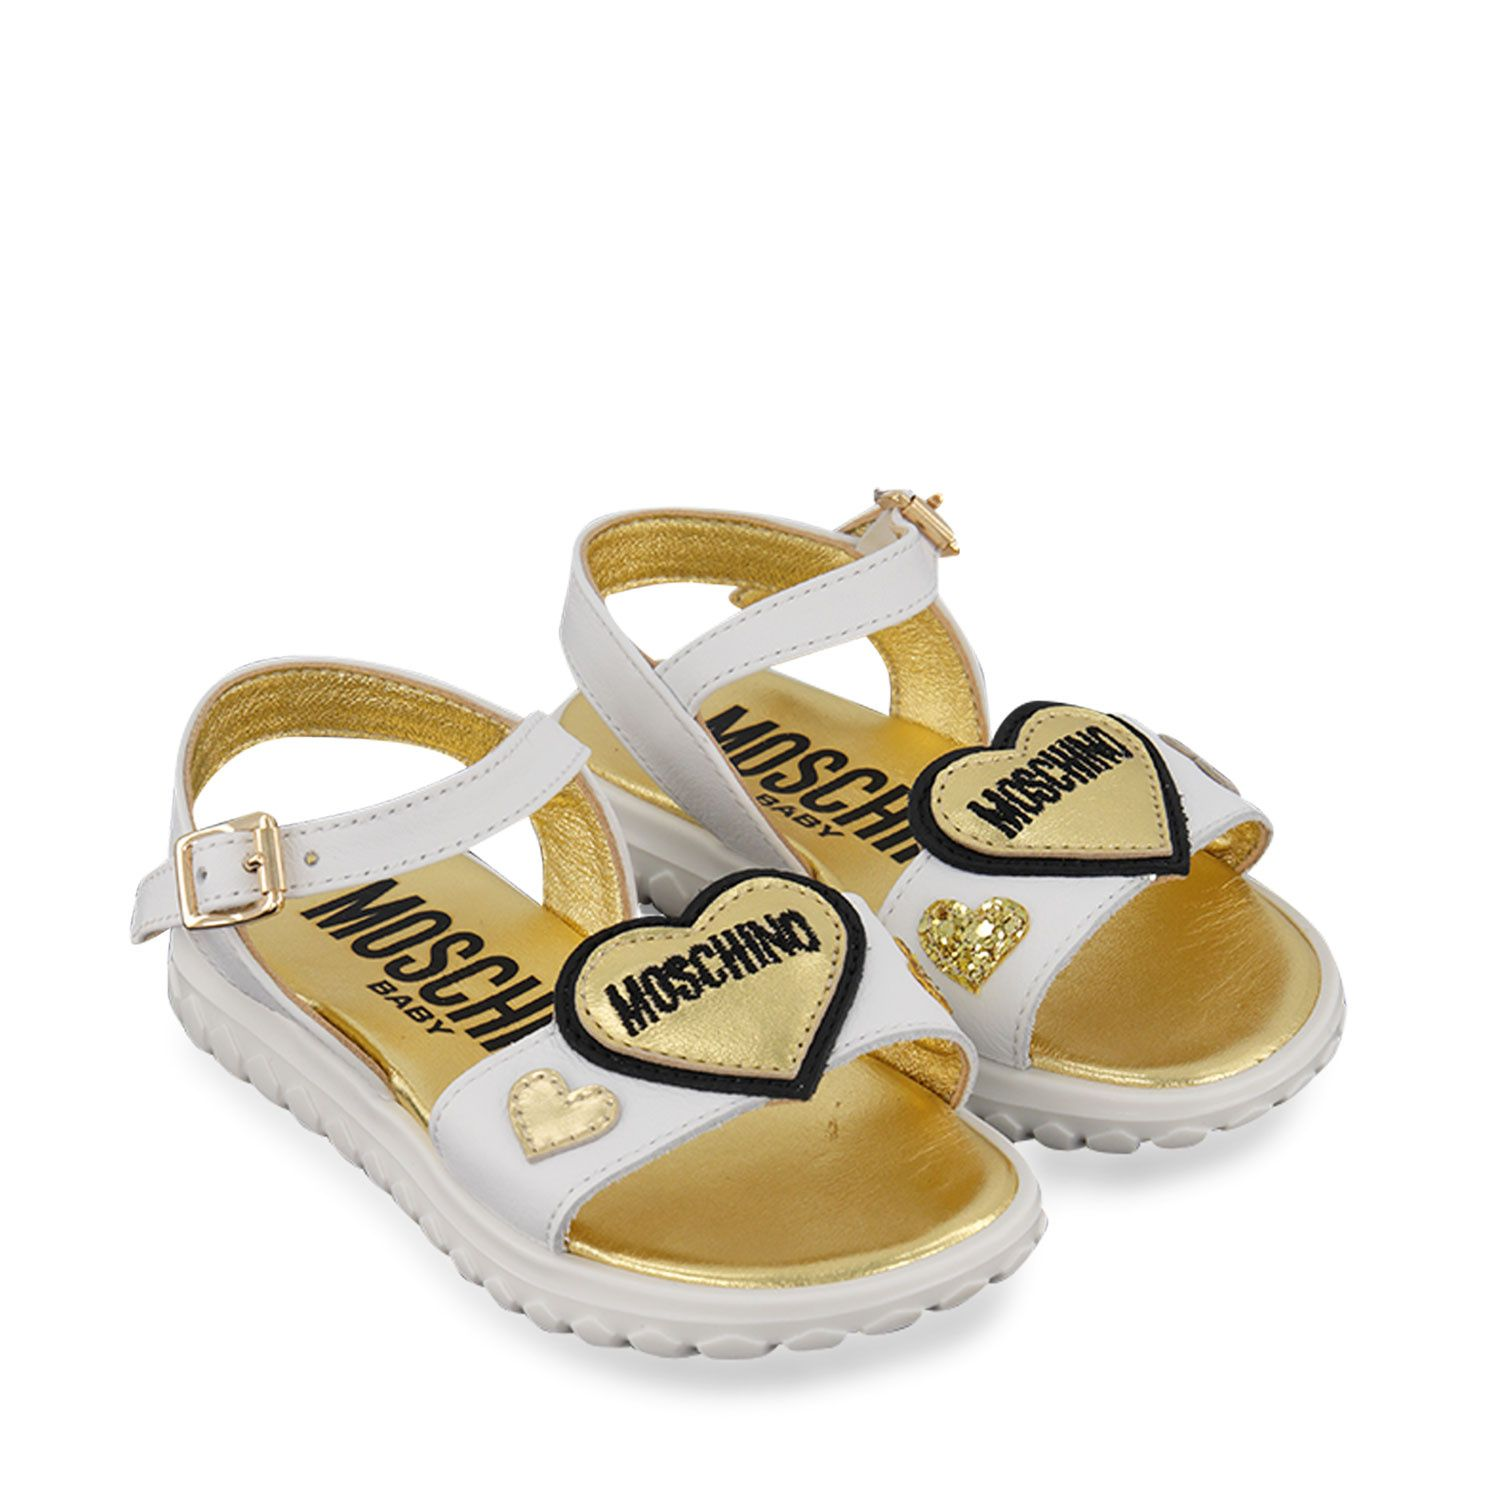 Picture of Moschino 67352 kids sandals white